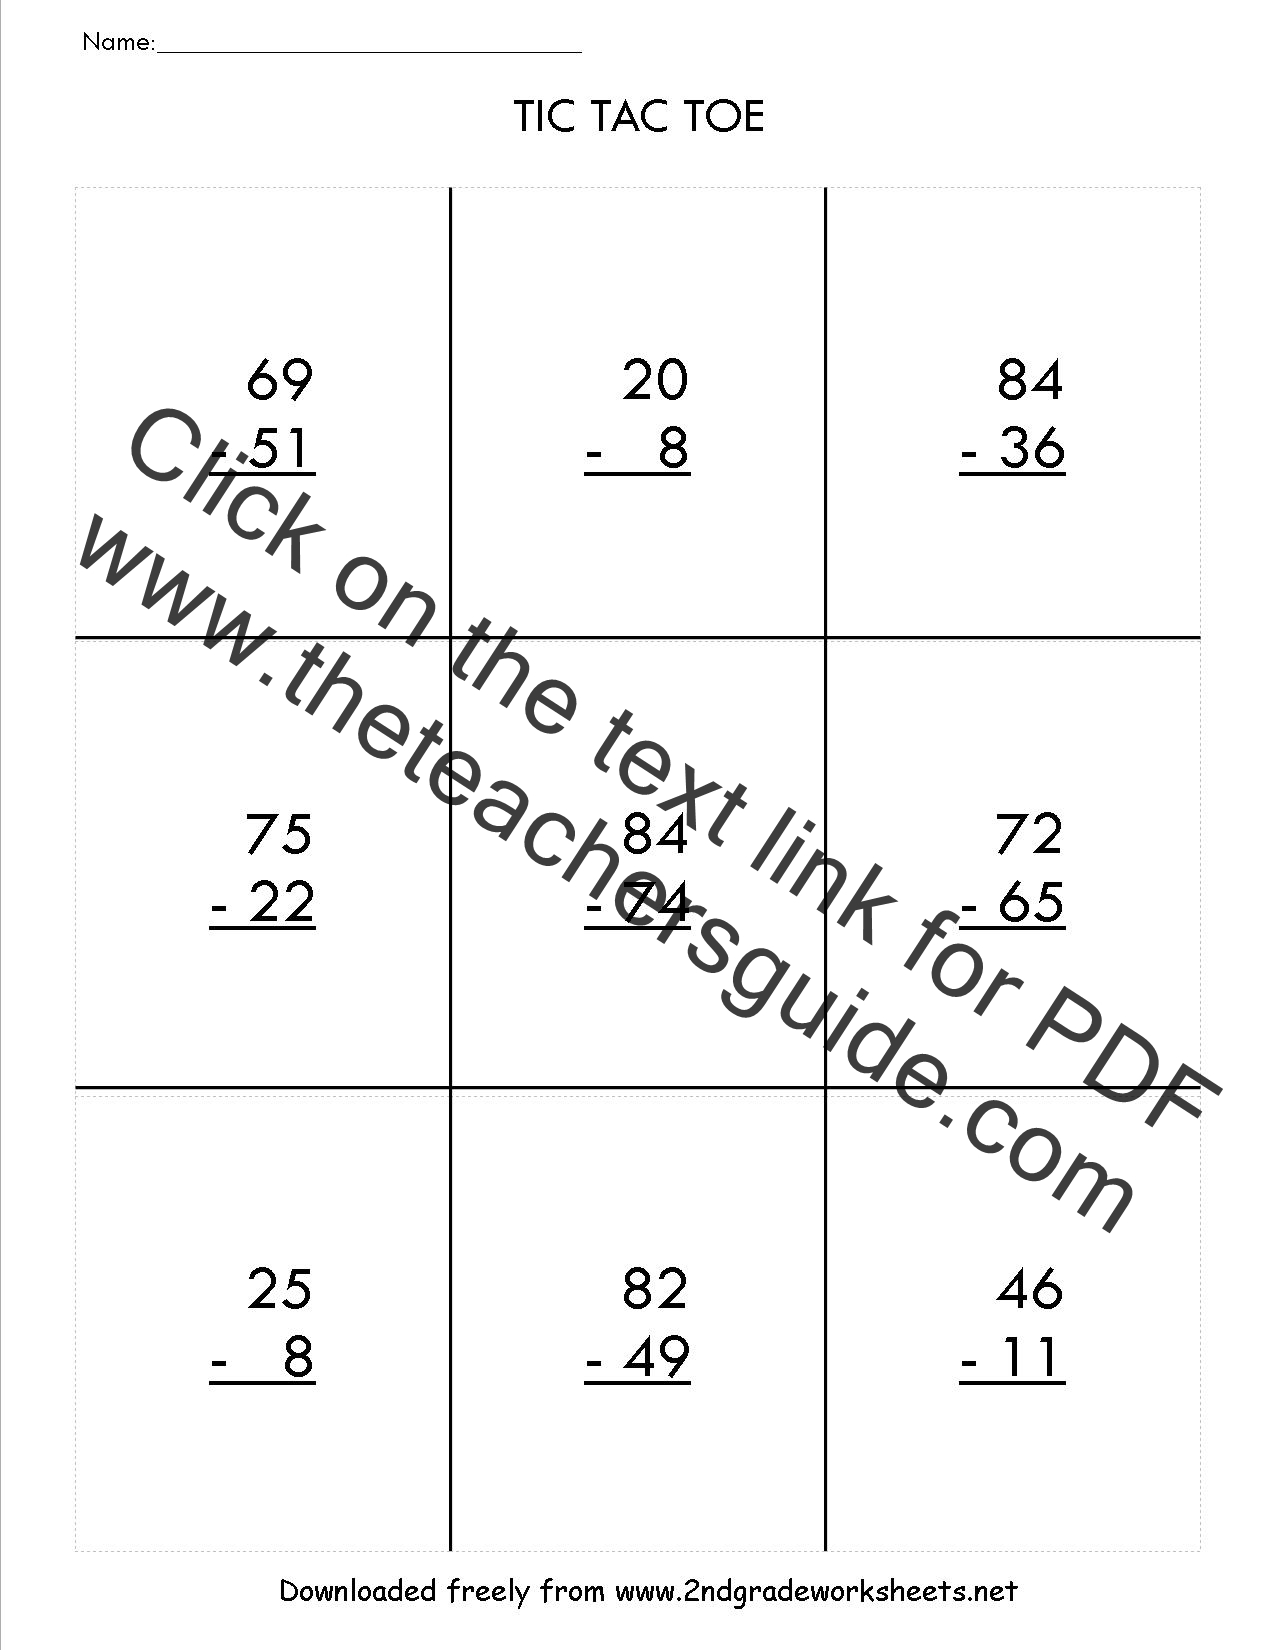 worksheet Two Digit Subtraction Worksheets digit subtraction worksheets two with regrouping tic tac toe